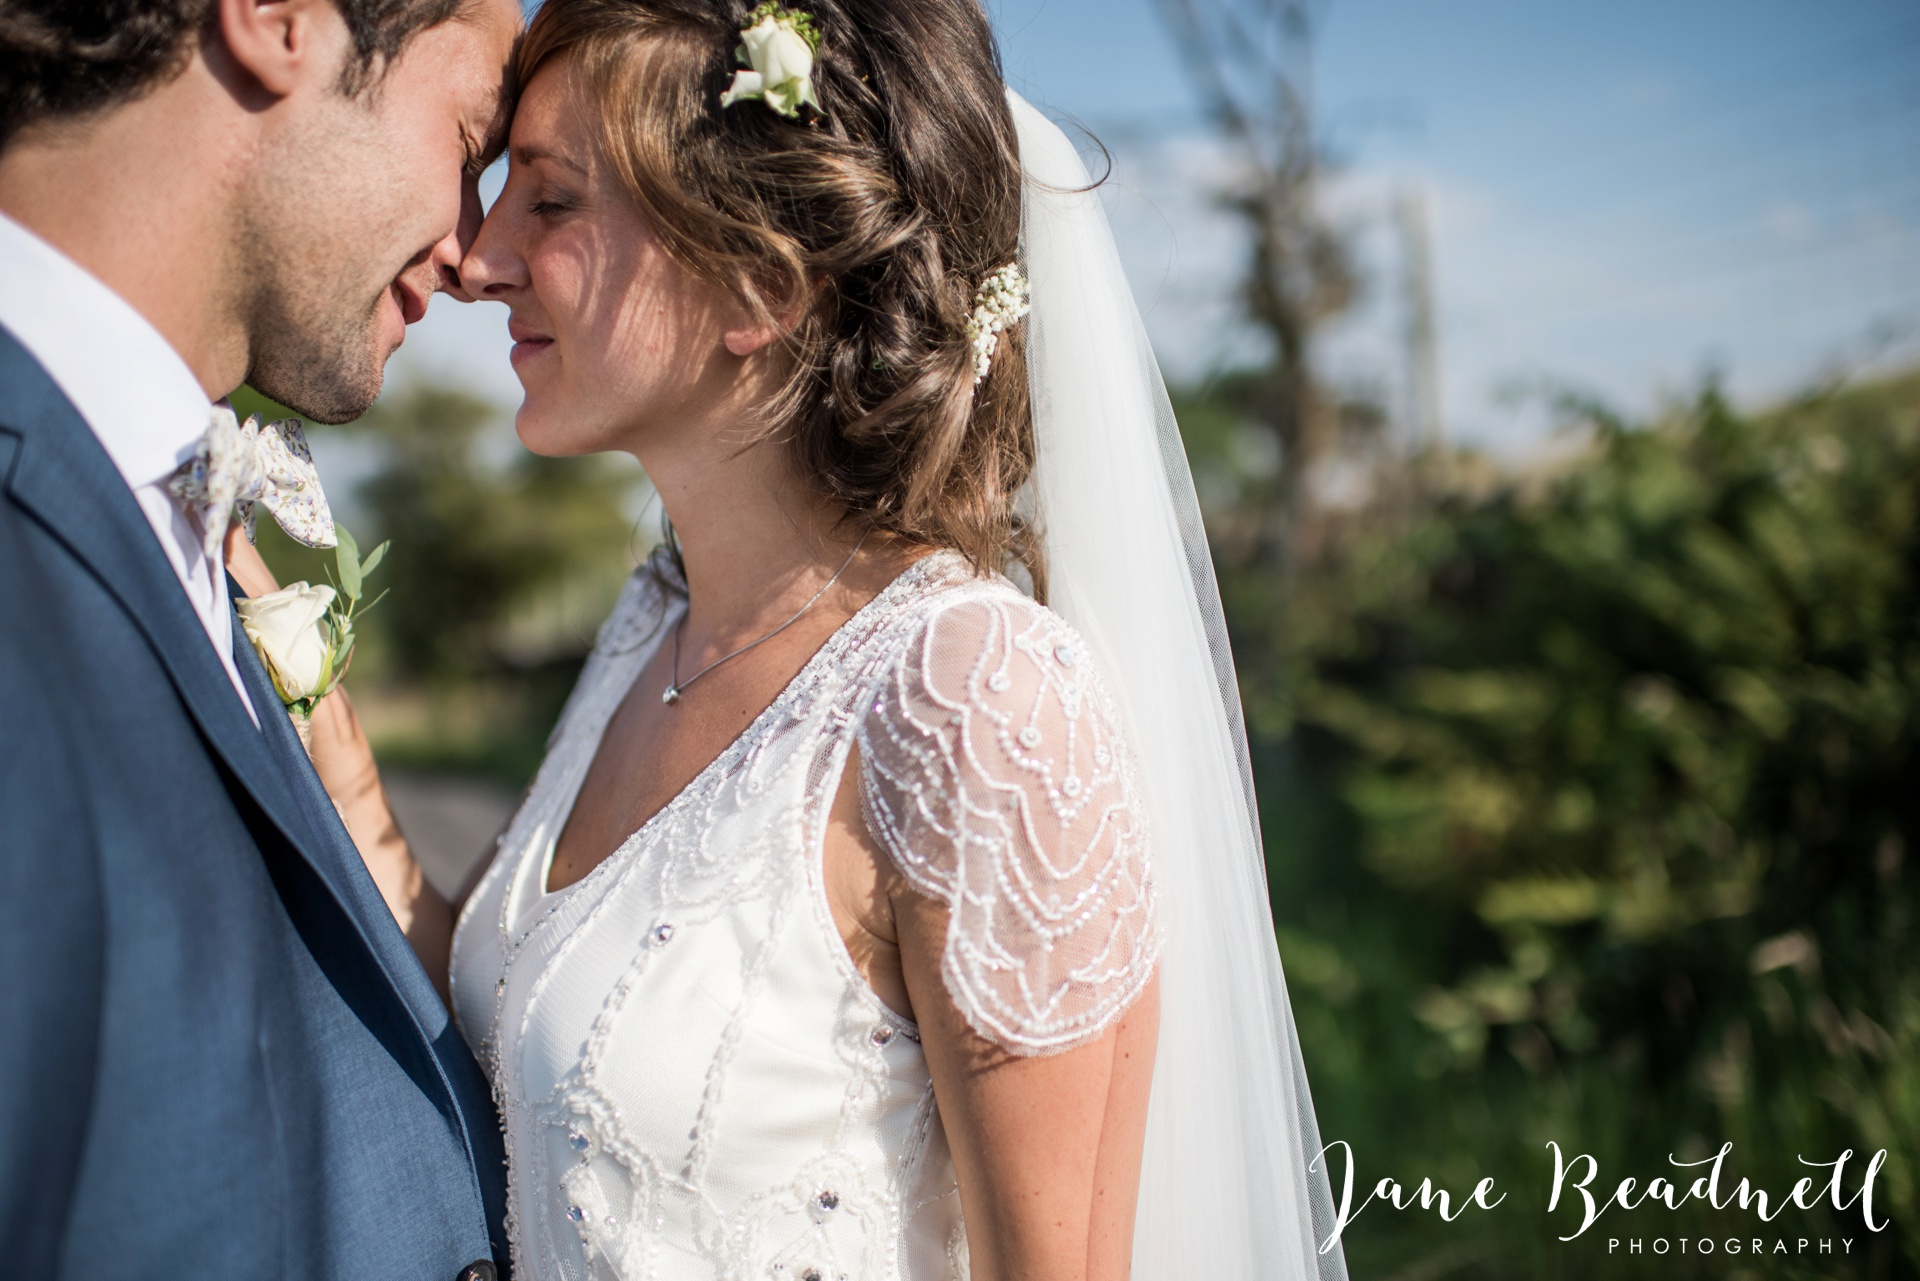 Jane Beadnell fine art wedding photographer Leeds_0090